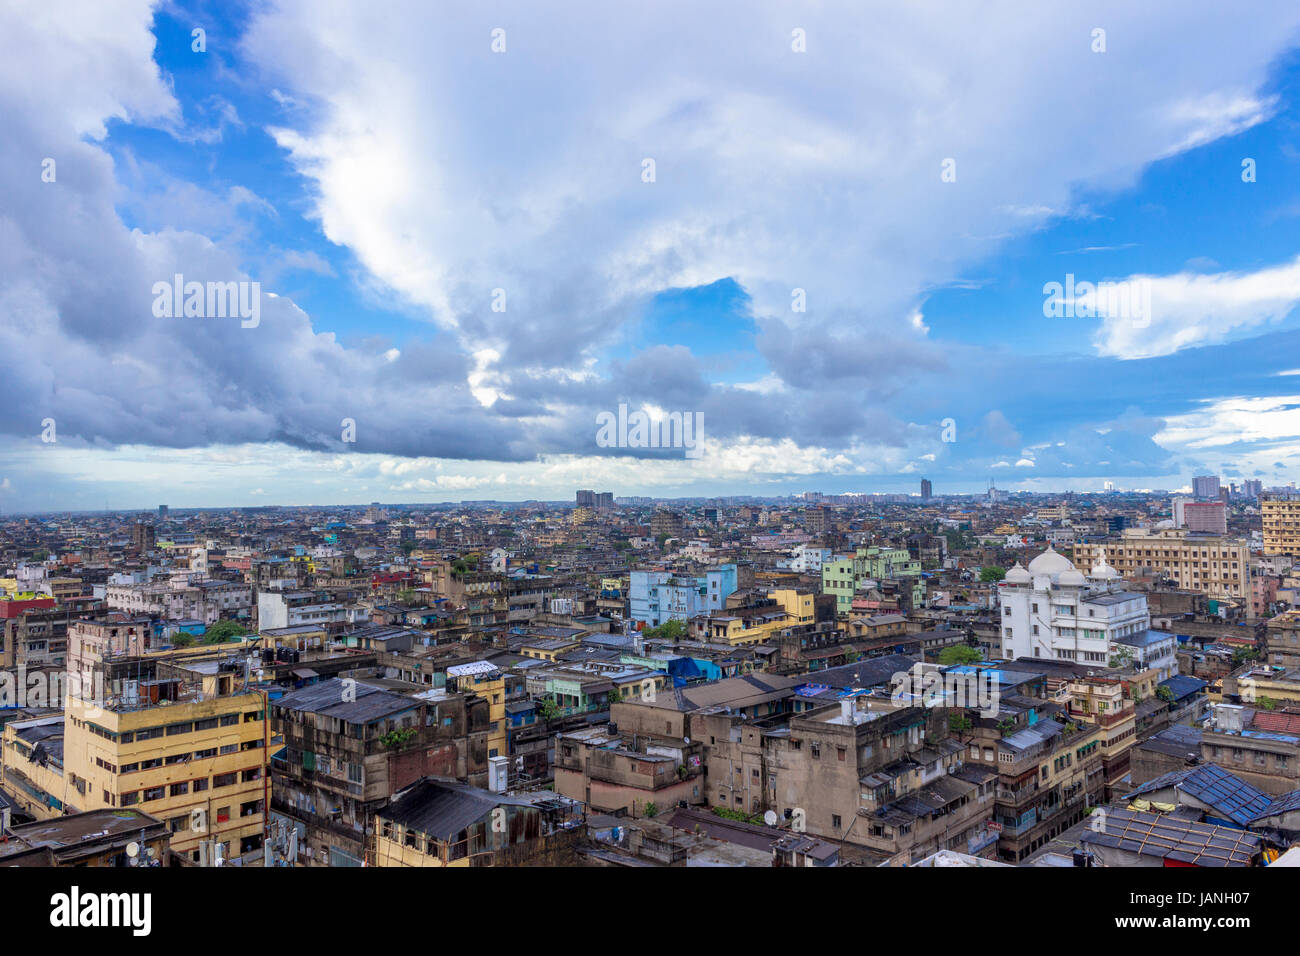 Aerial Kolkata city view and cloudscape. - Stock Image